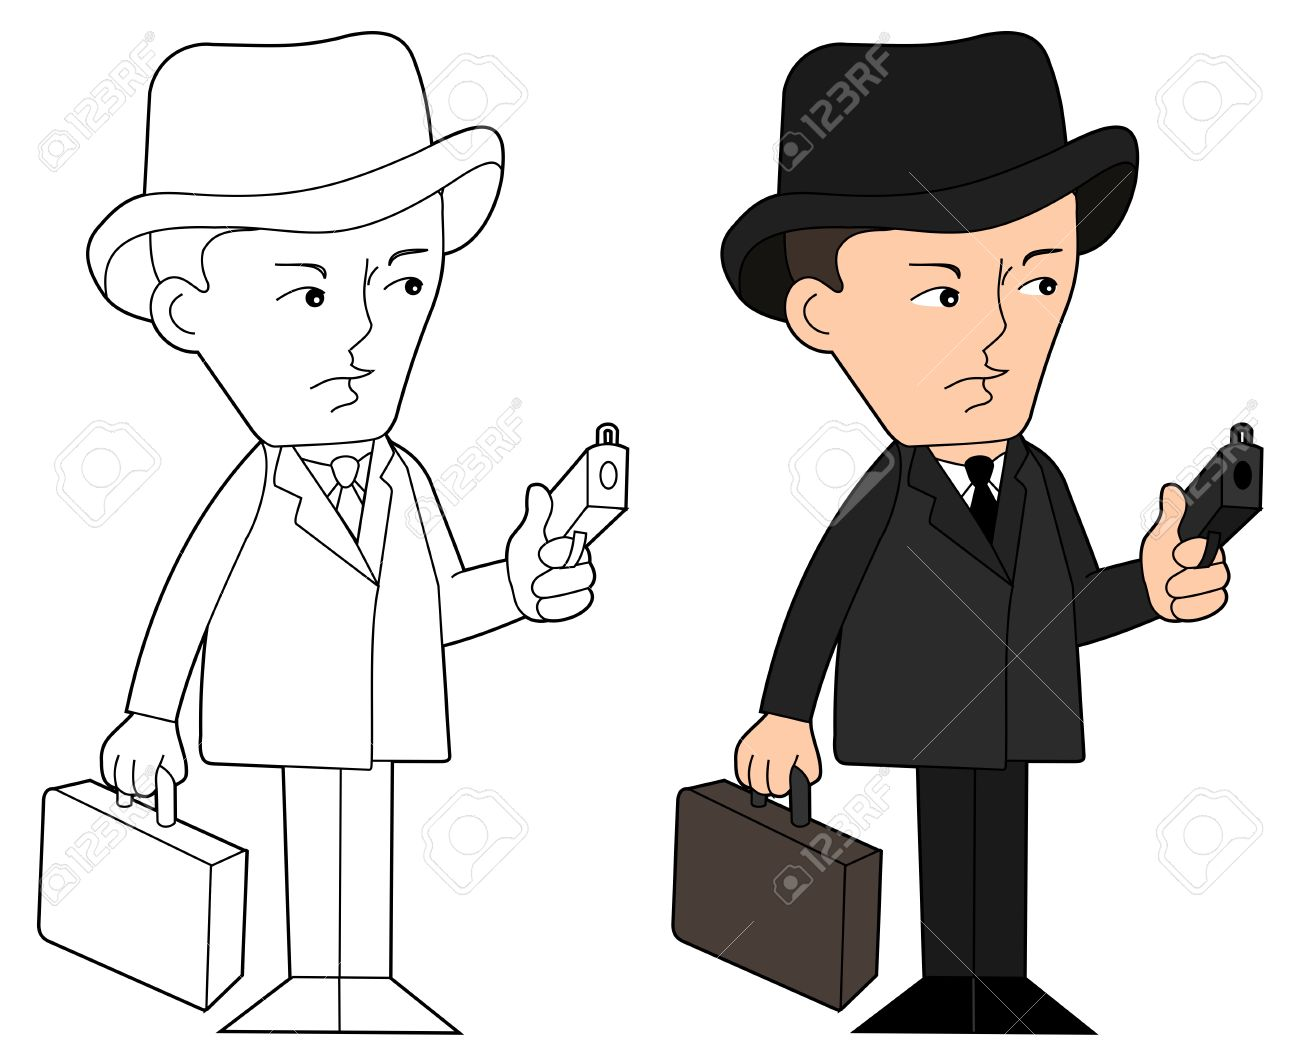 Mobster With Gun And Suitcase, Coloring Book Line-art Royalty Free ...